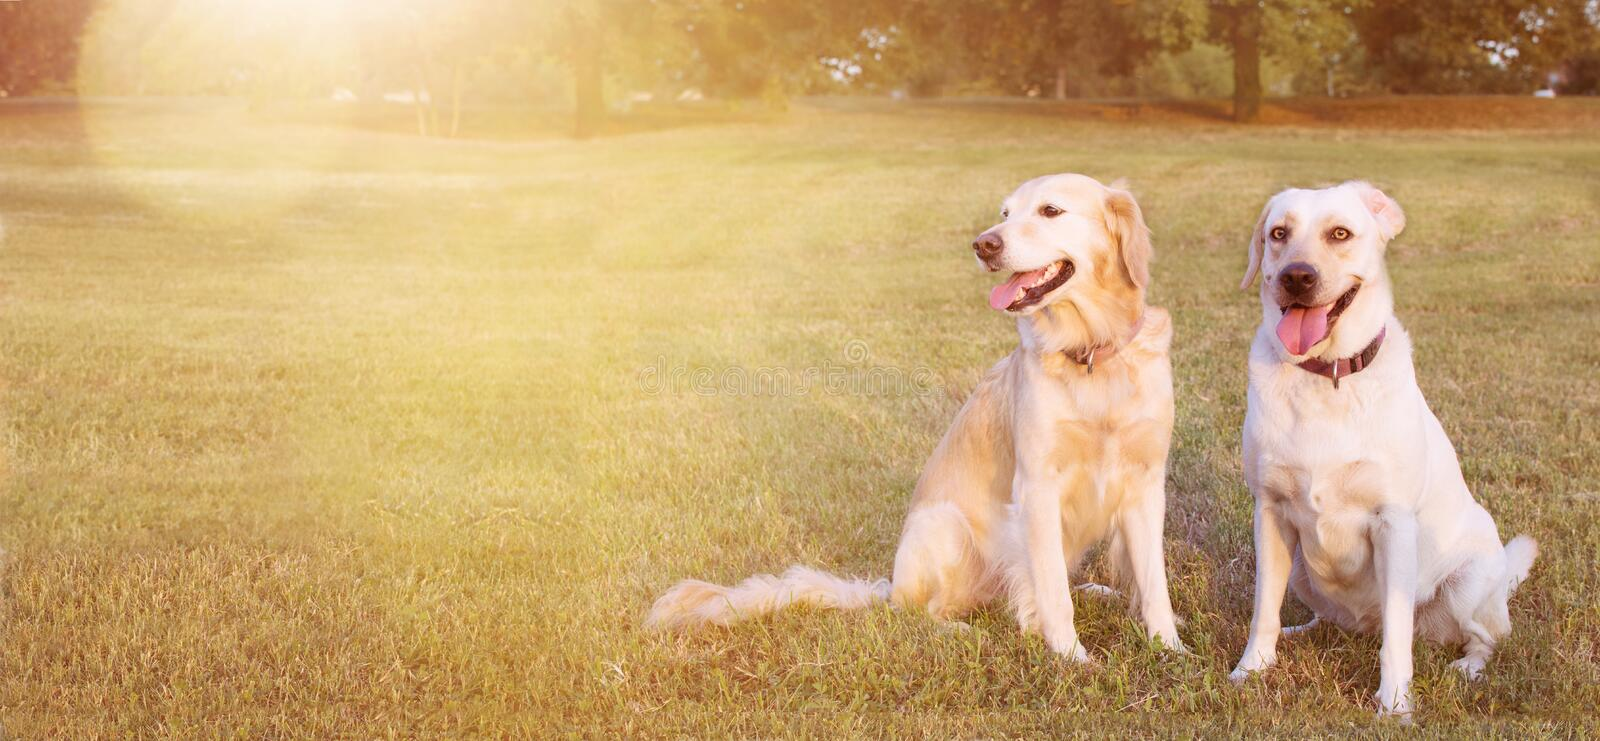 WEBSIDE BANNER TWO FUNNY HAPPY DOGS LABRADOR AND GOLDEN RETRIEVER SITTING IN THE GRASS ON SUMMER HEAT royalty free stock photos